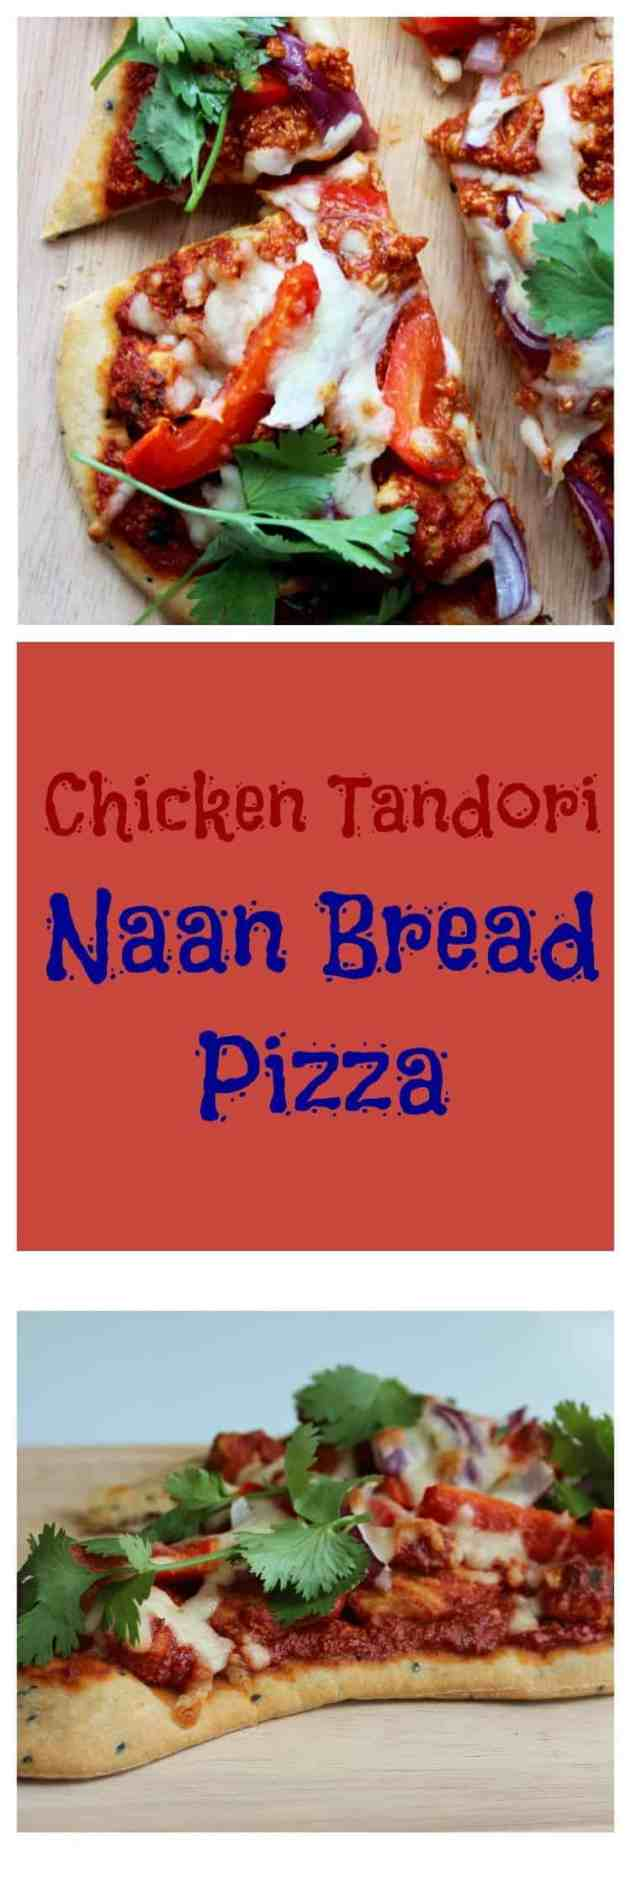 This Chicken Tandoori Naan Bread Pizza is super easy to make at home for a great takeaway alternative, packed full of Indian flavours and super easy to prepare